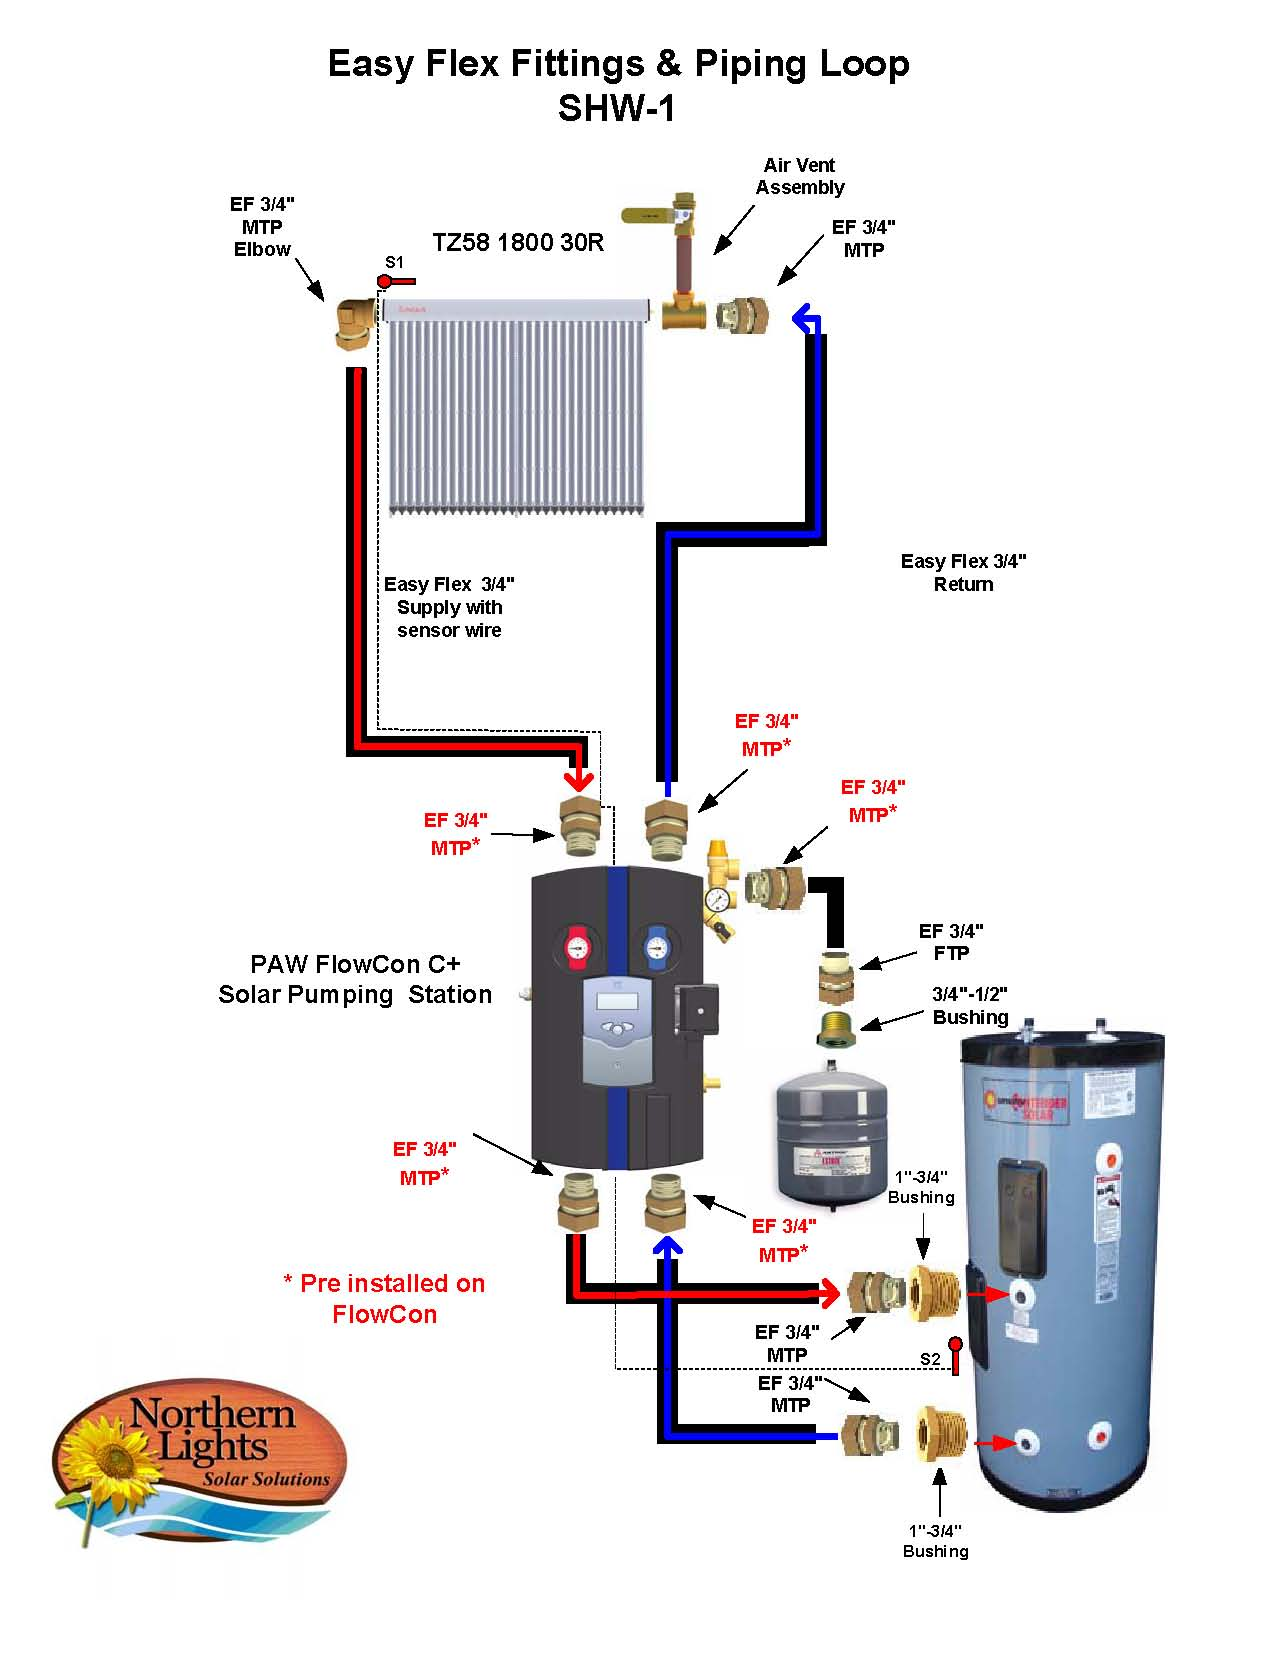 Ventilation Systems Exhaust further Technical as well Taco Zone Valve Control Wiring Diagram further Watch further Opensystem. on residential boiler wiring diagram